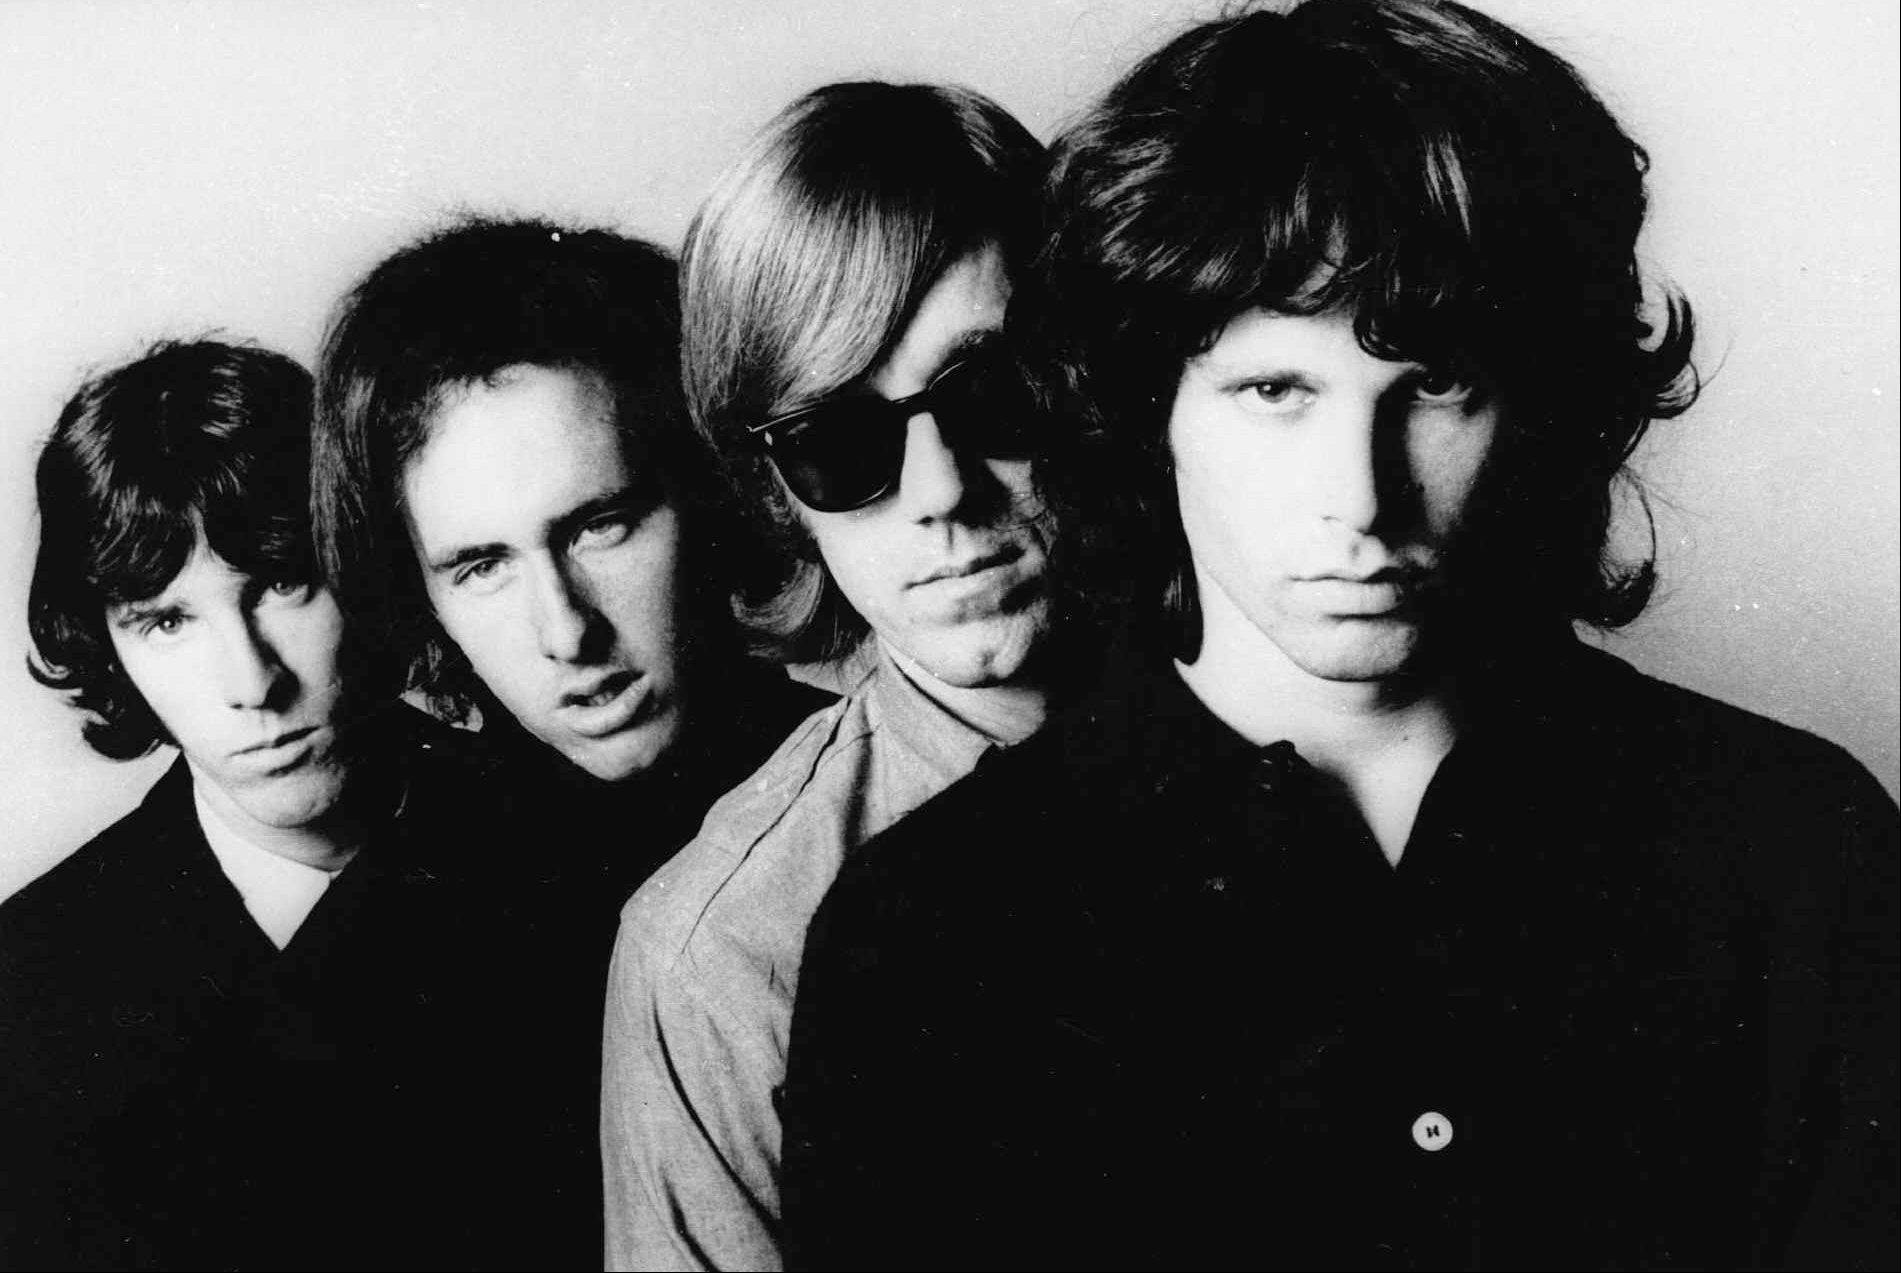 Members of the Doors, from left, John Densmore, Robbie Krieger, Ray Manzarek and Jim Morrison, pose for a portrait. Manzarek, the keyboardist who was a founding member of The Doors, has died at 74.